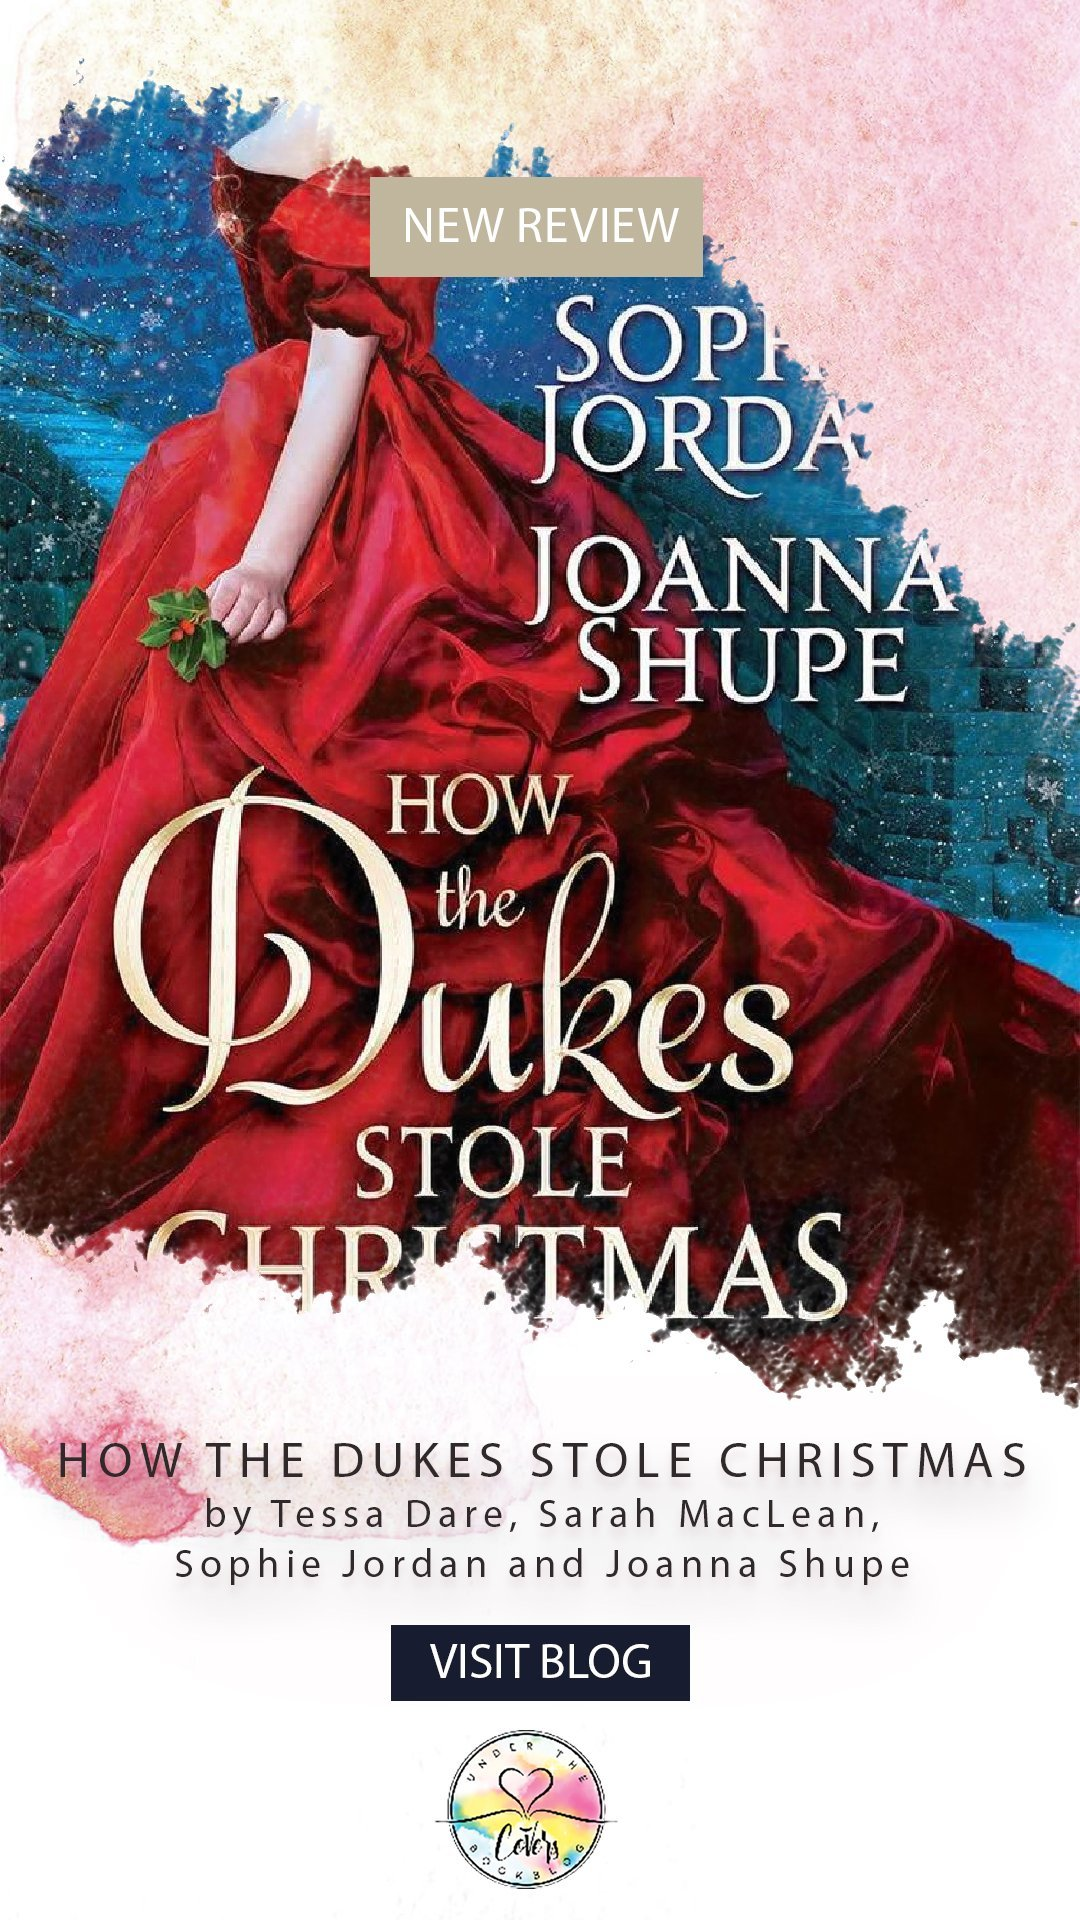 ARC Review: How the Dukes Stole Christmas by Tessa Dare, Sarah MacLean, Joanna Shupe and Sophie Jordan